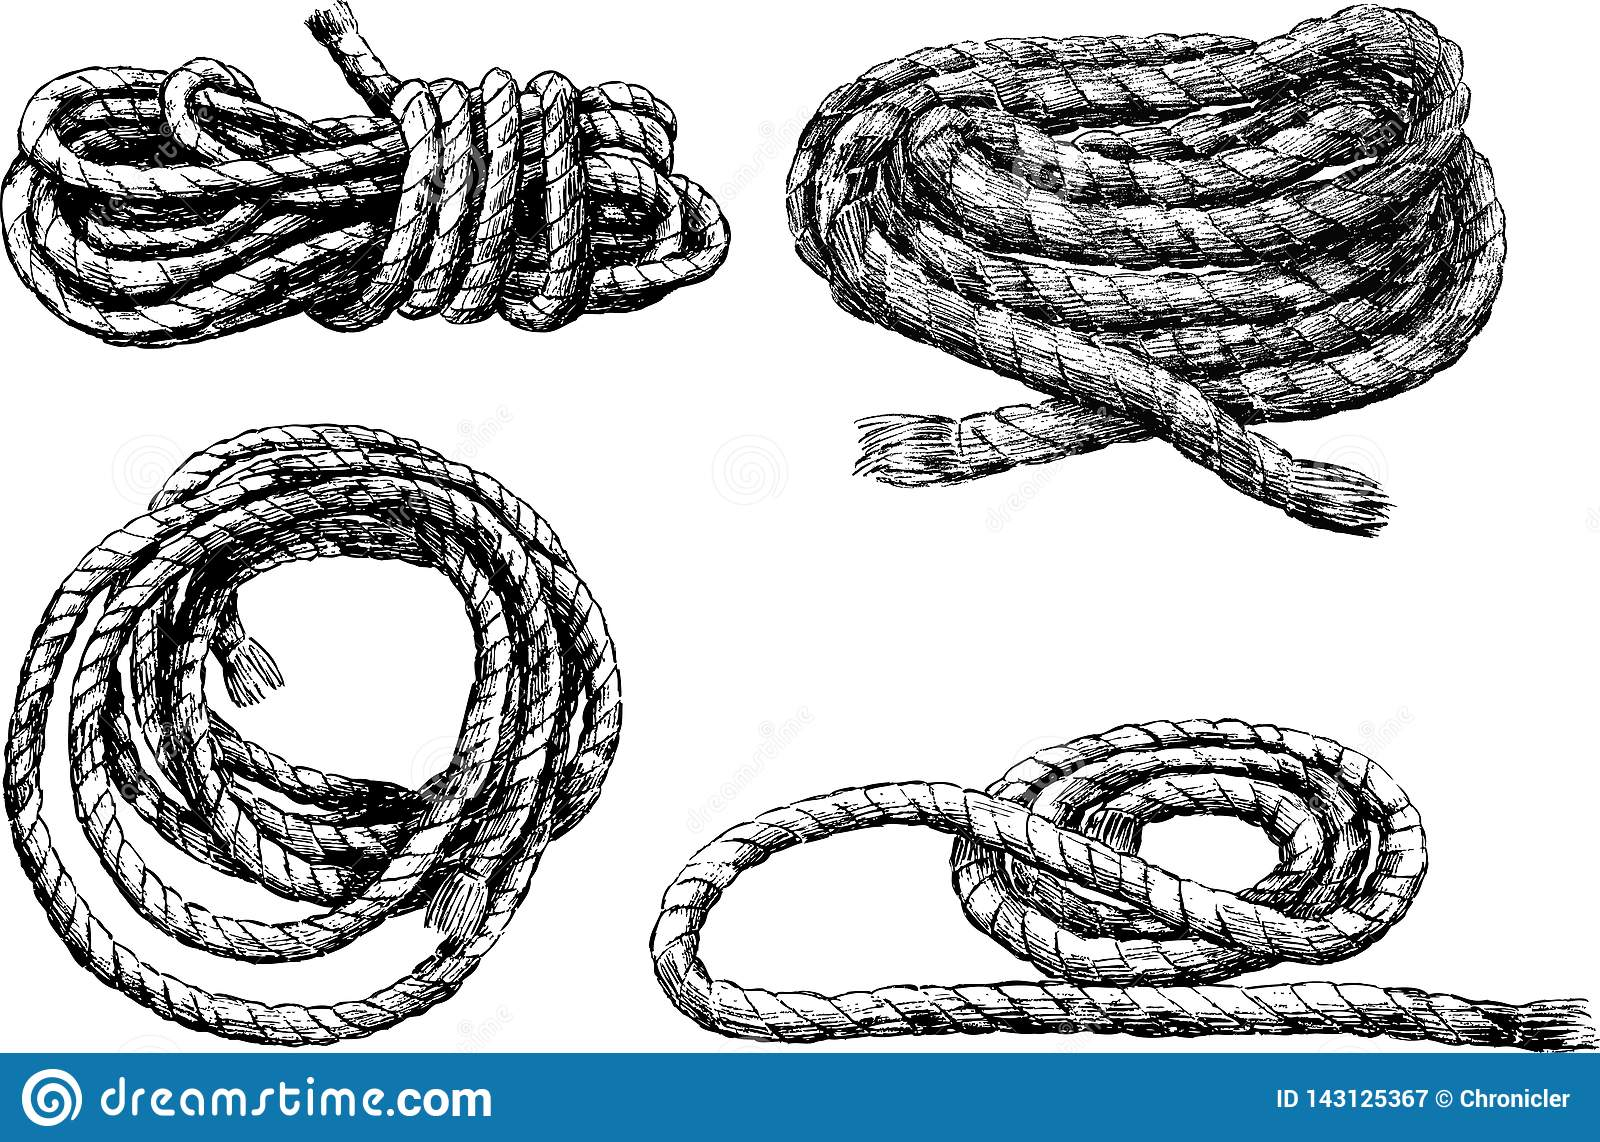 Sketches of skeins of rigging rope